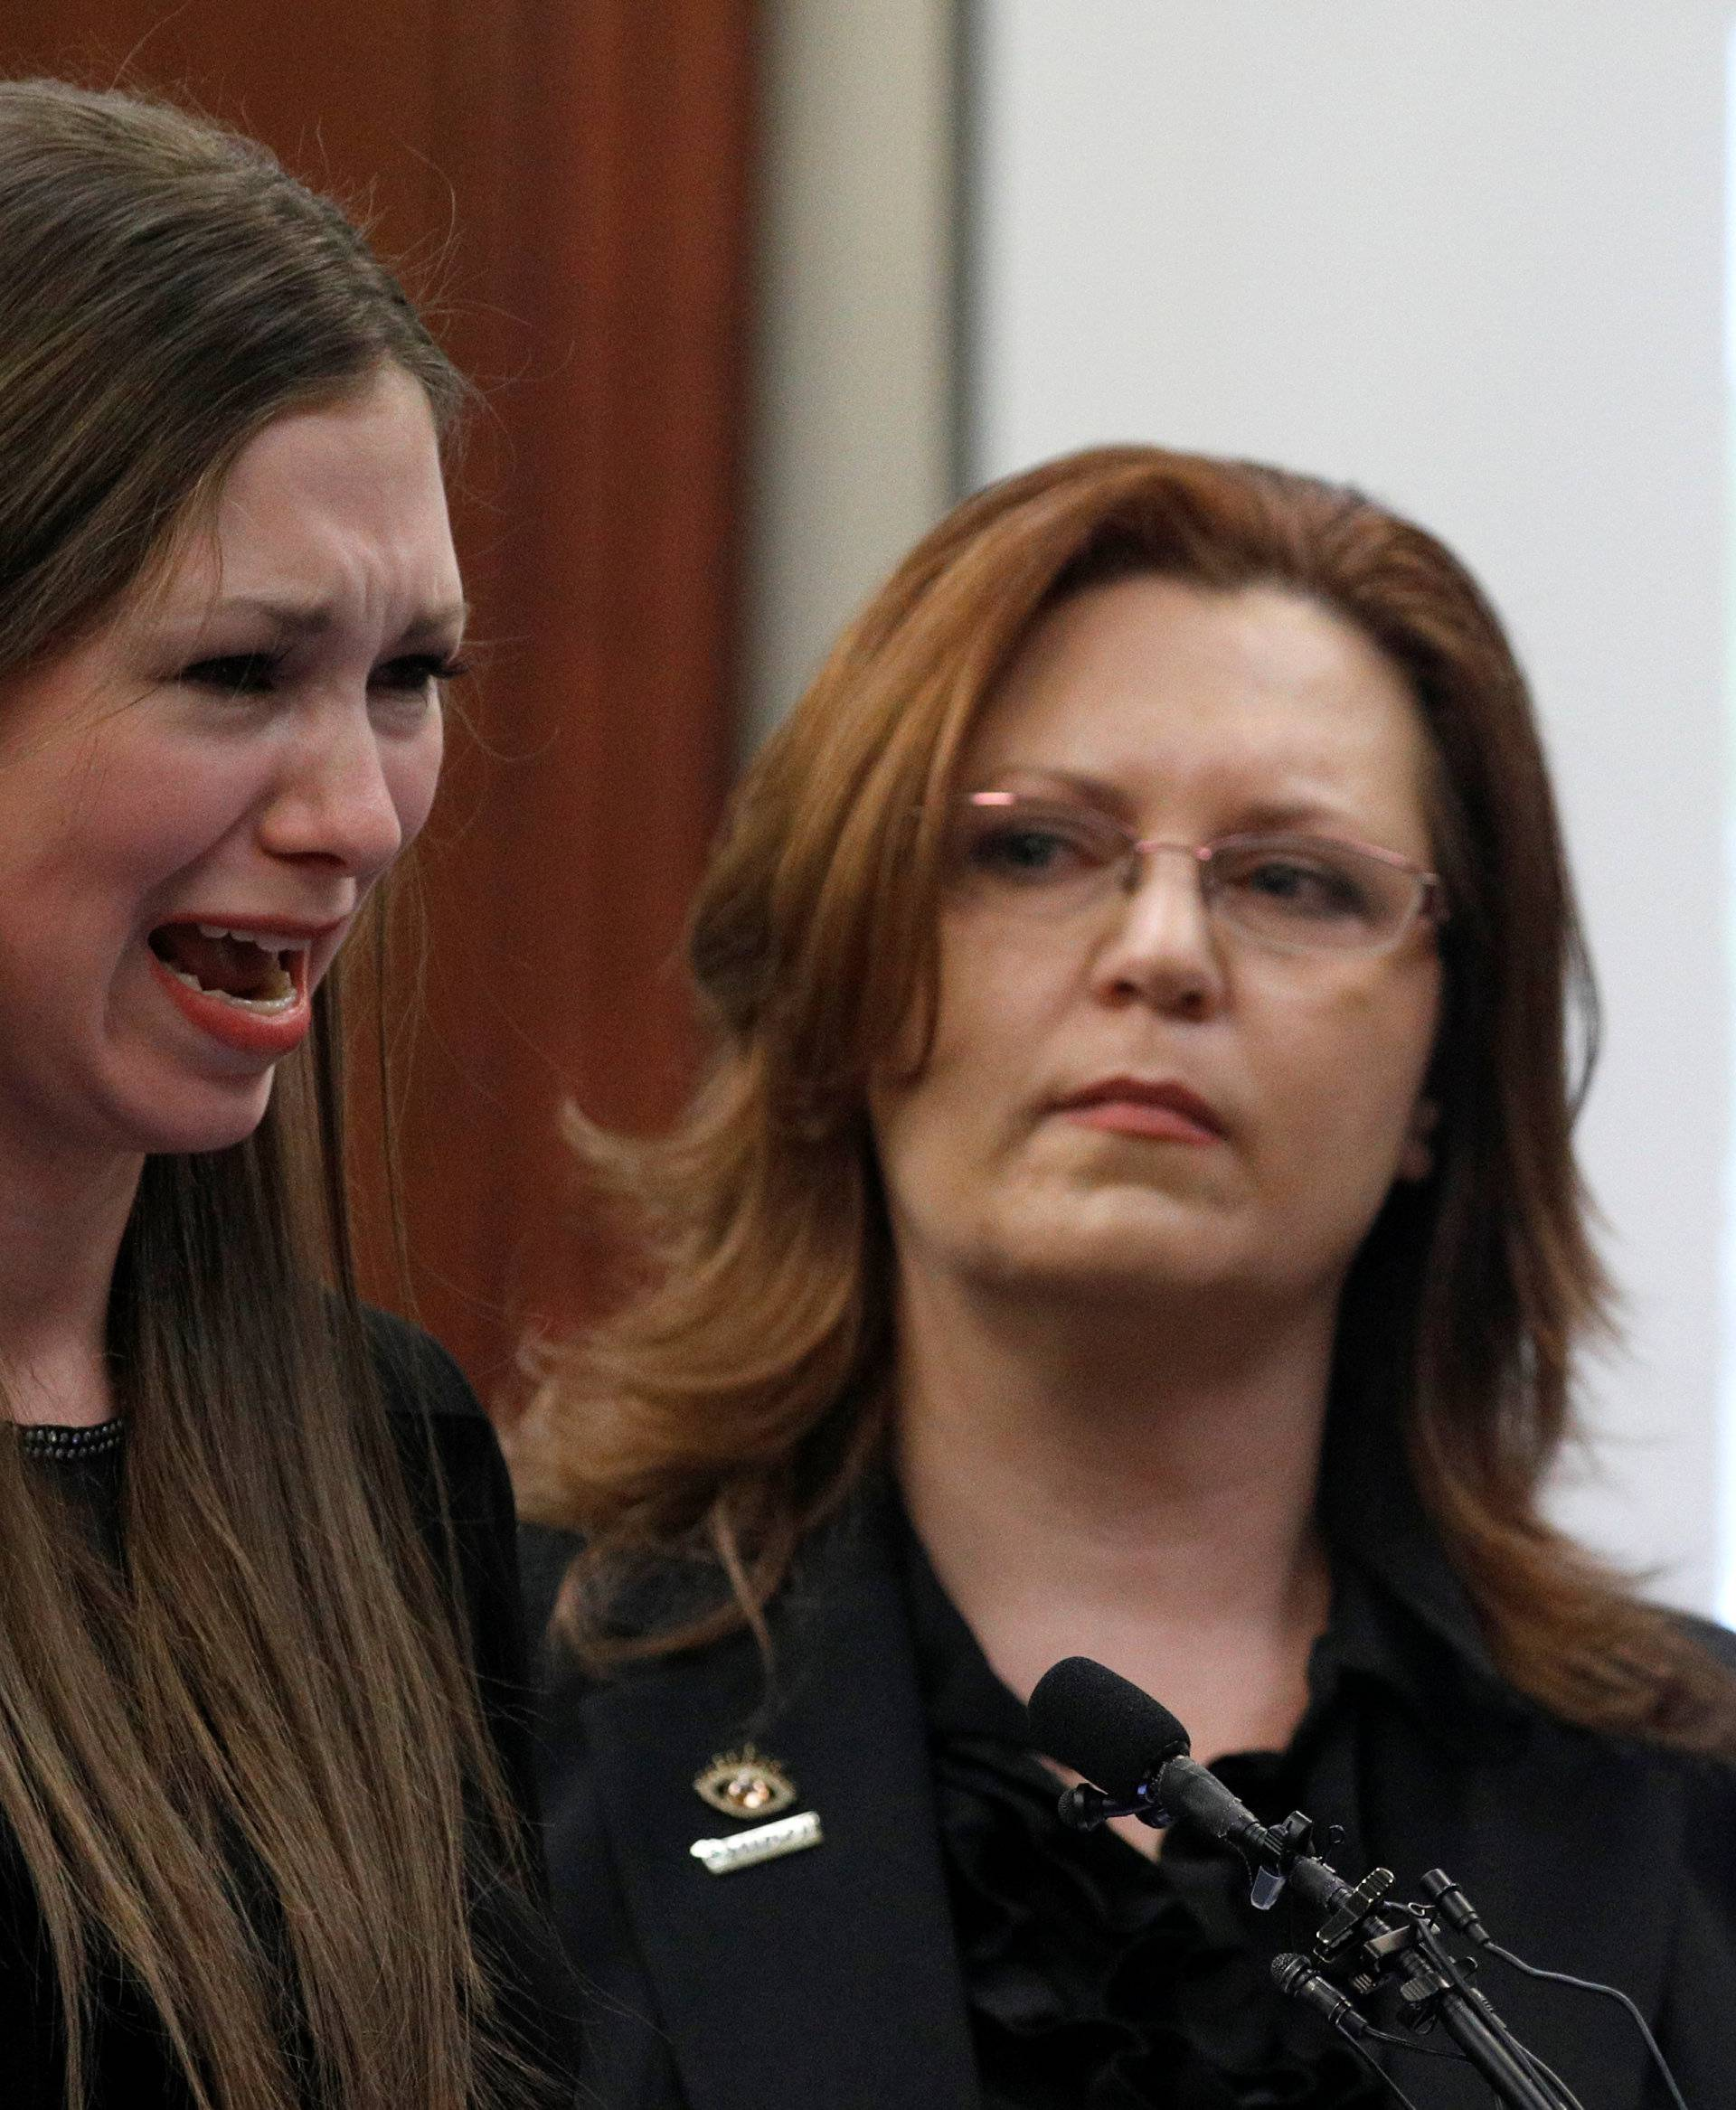 Victim Jessica Smith speaks at the sentencing hearing for Larry Nassar, a former team USA Gymnastics doctor who pleaded guilty in November 2017 to sexual assault charges, in Lansing